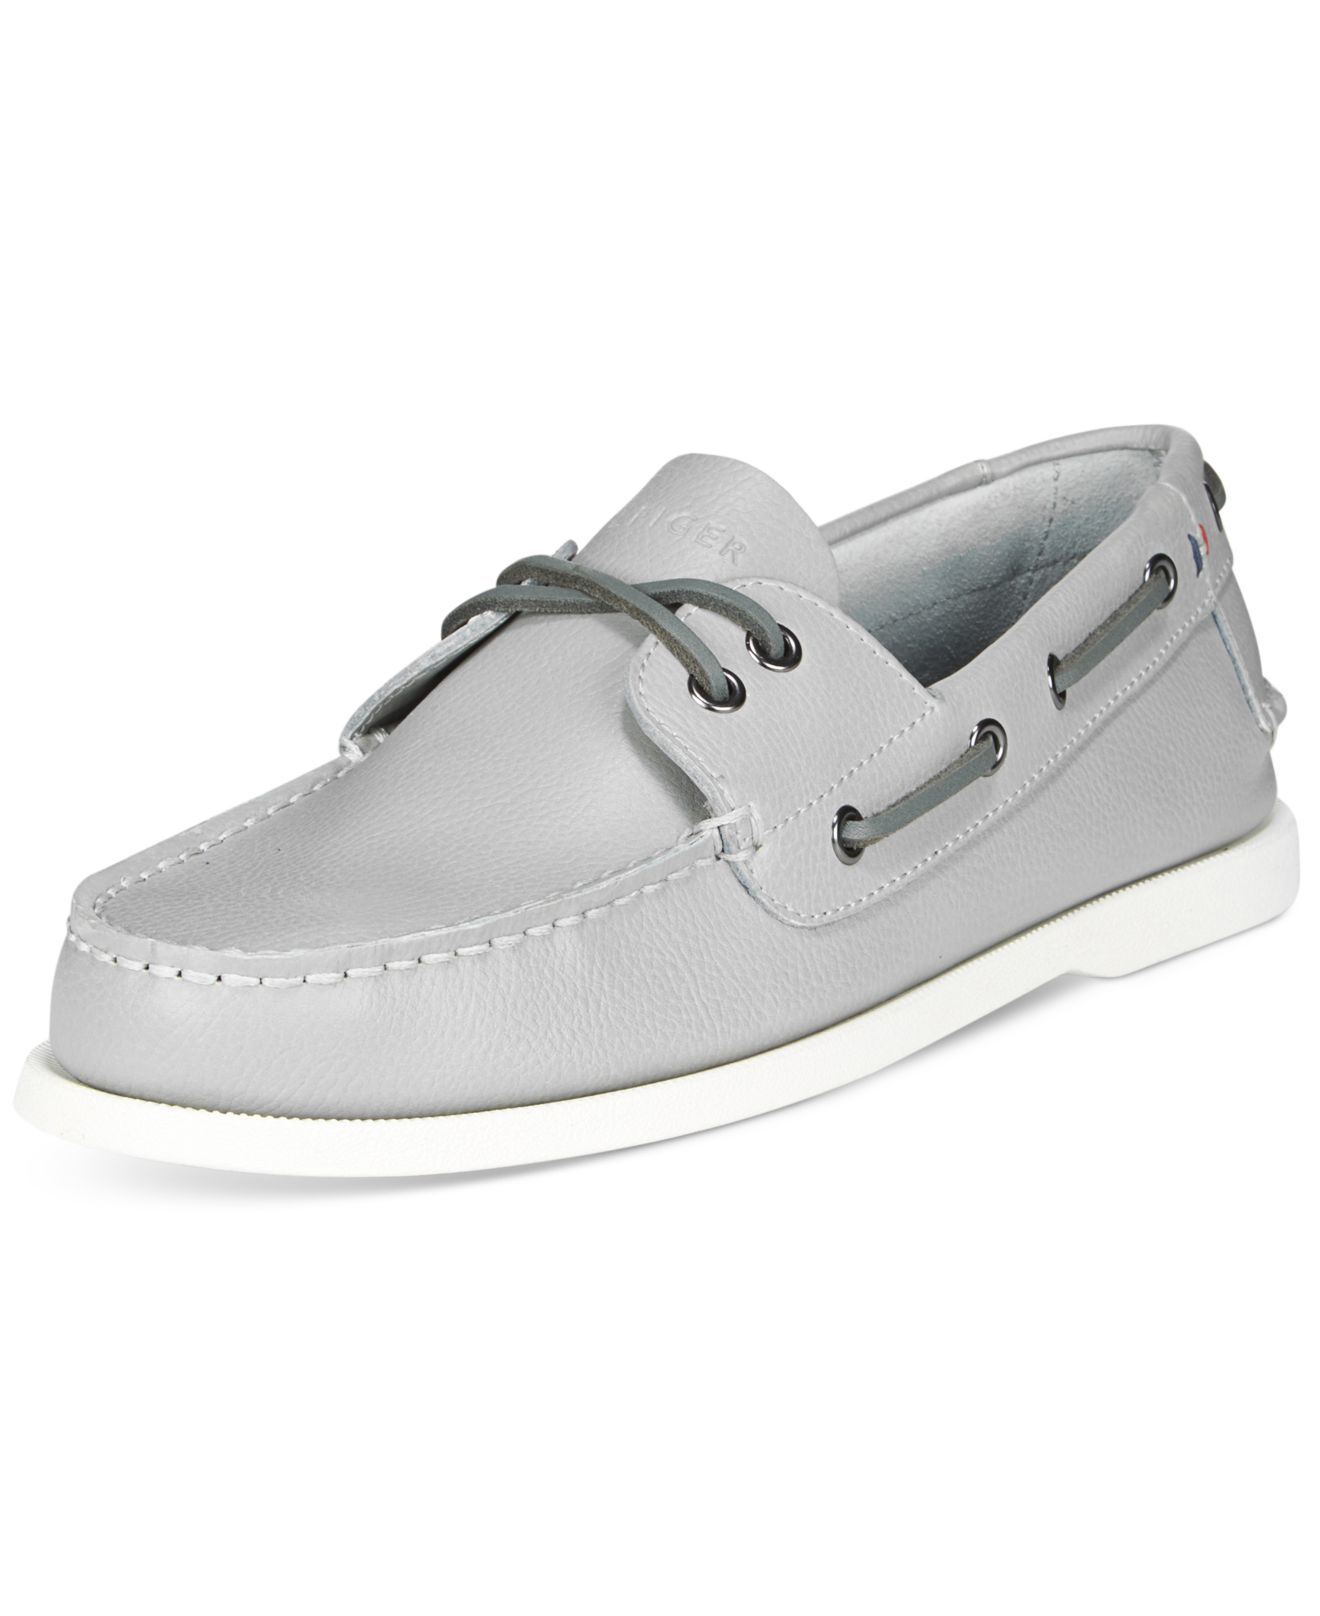 34ccc9f82f285 Lyst - Tommy Hilfiger Men s Bowman Boat Shoes in Gray for Men